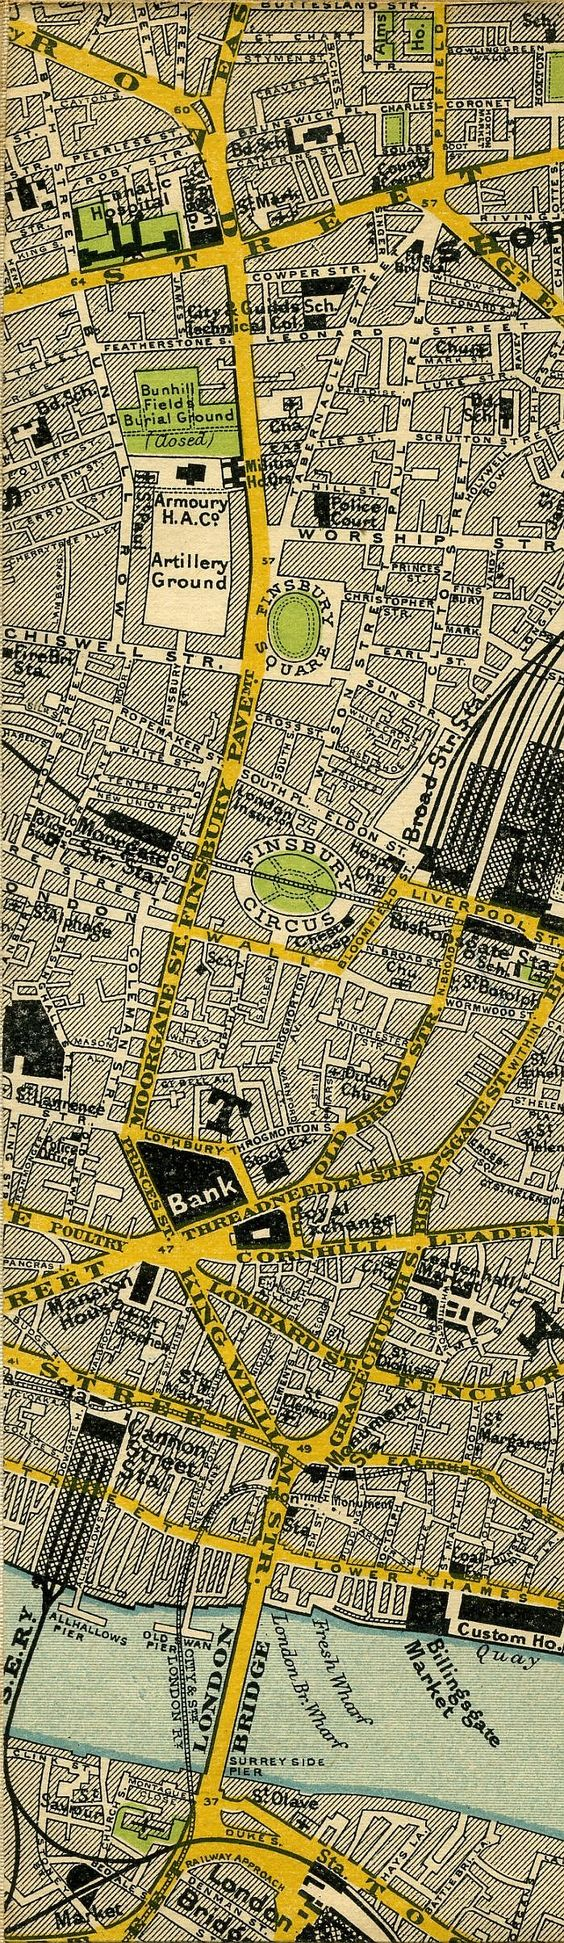 1897 map of central London - Shoreditch and Bank